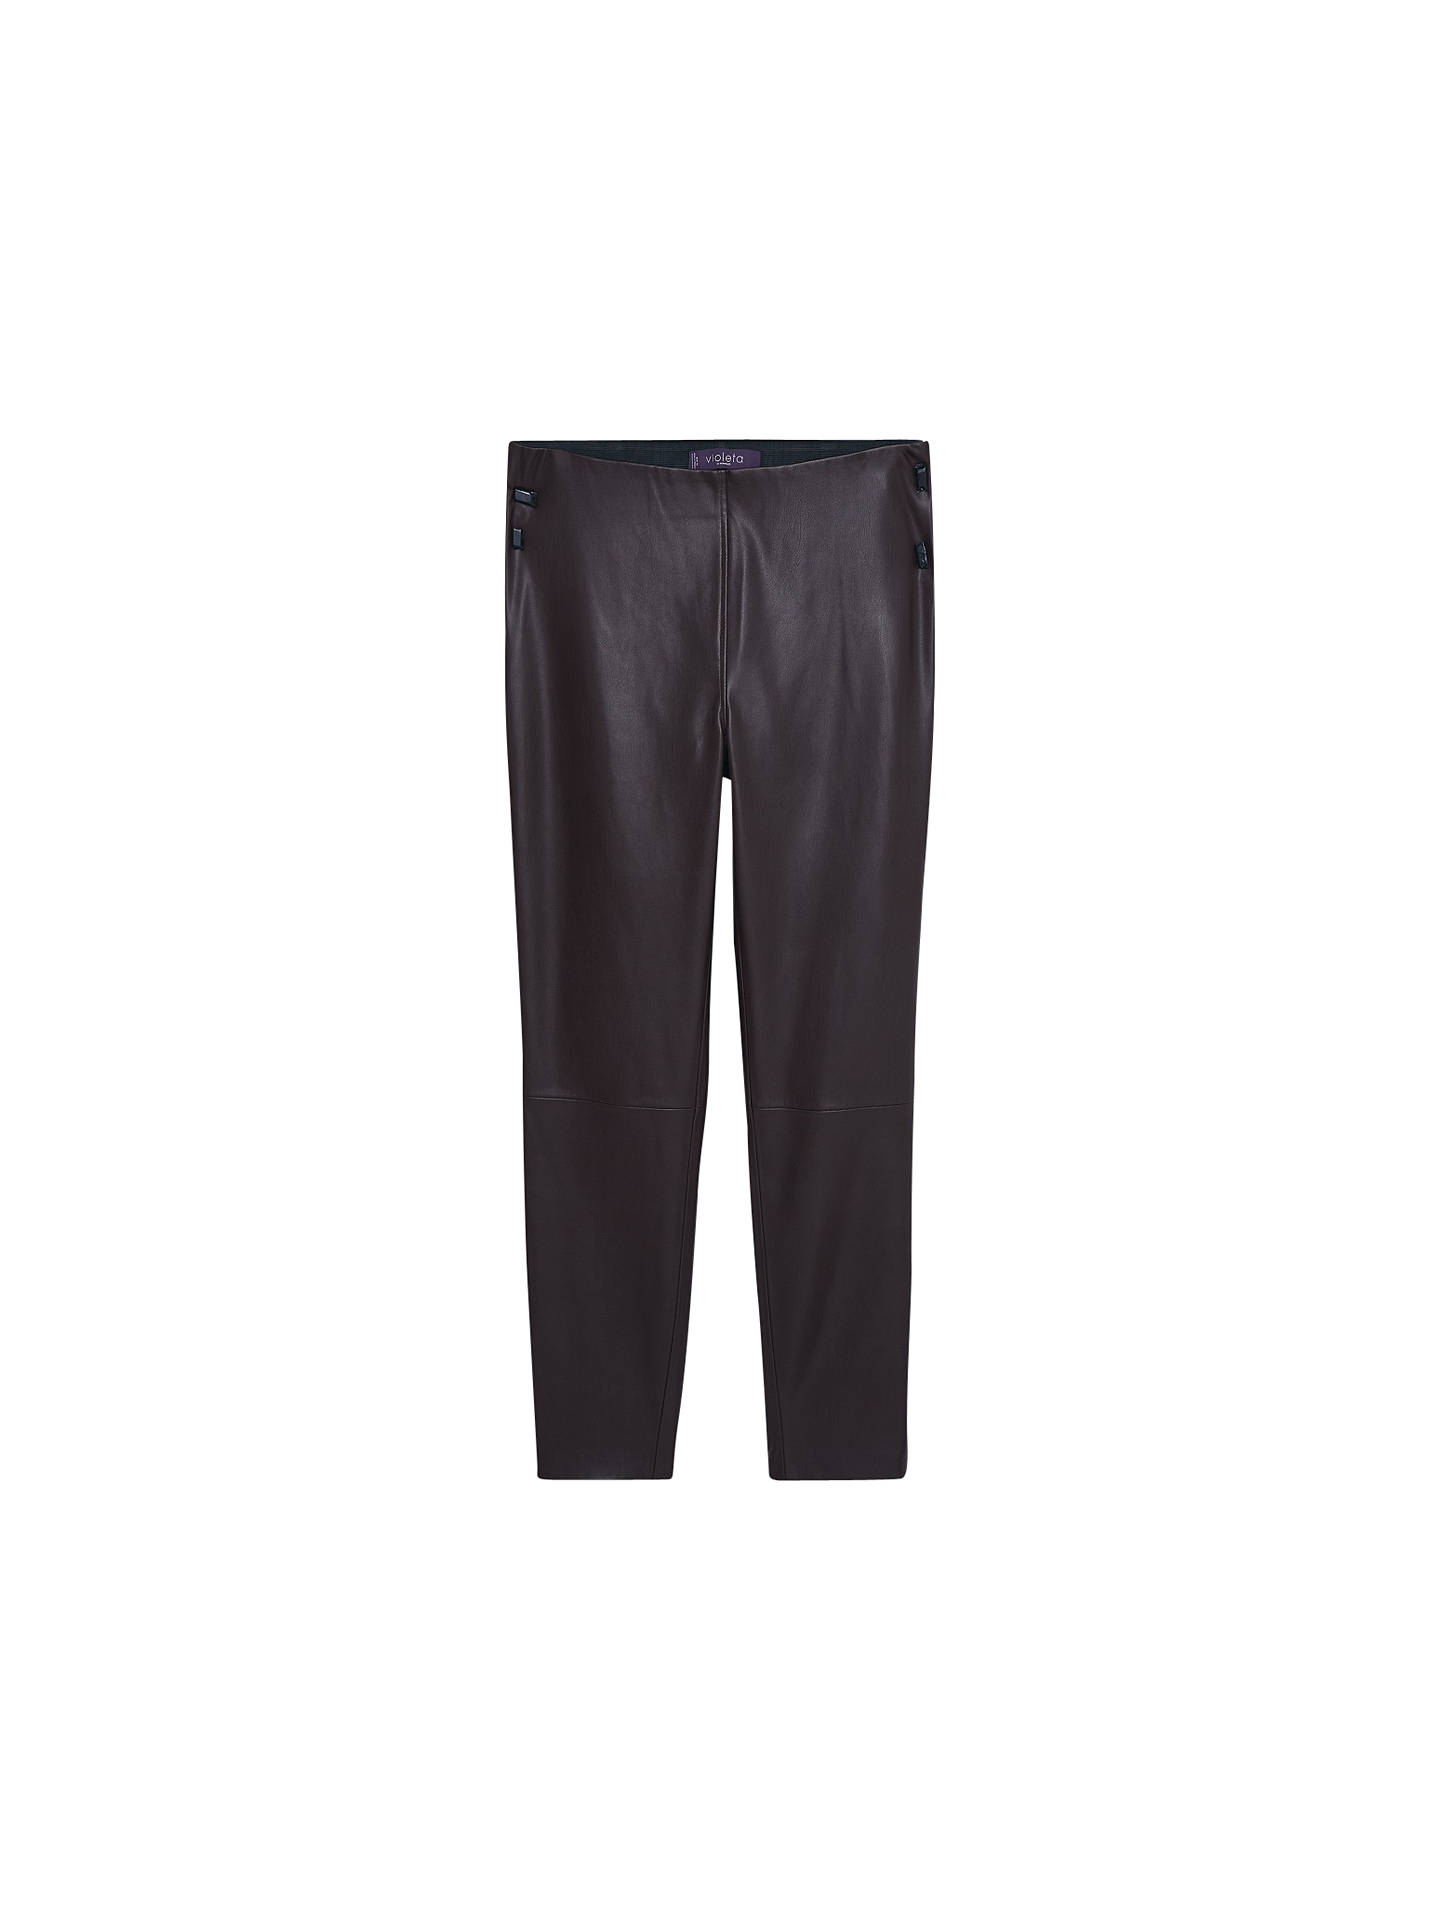 b5a5da9f32e5a8 Buy Violeta by Mango Faux Leather Leggings, Dark Brown, S Online at  johnlewis.